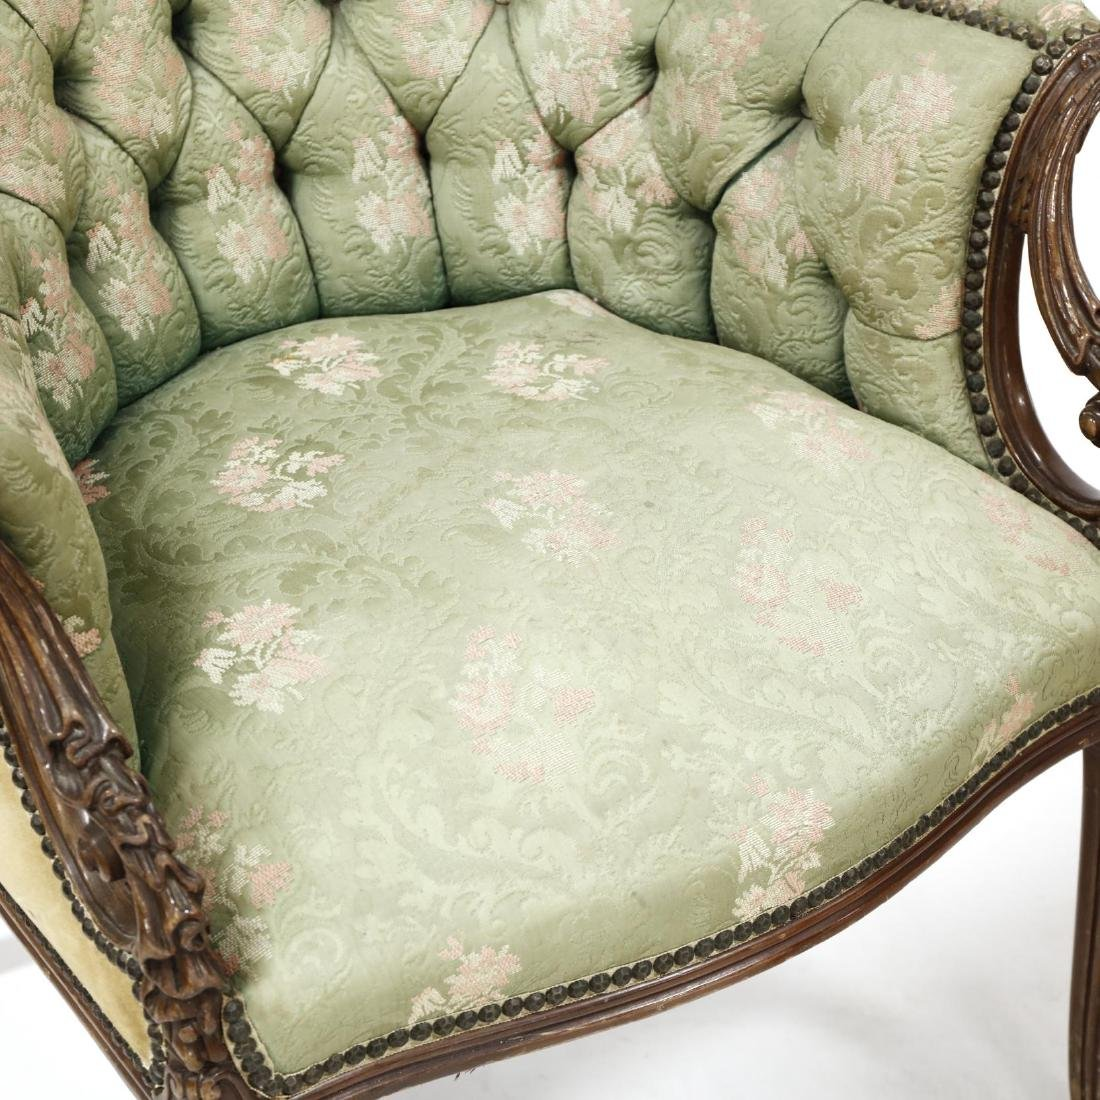 Pair of Edwardian Fireside Chairs - 2